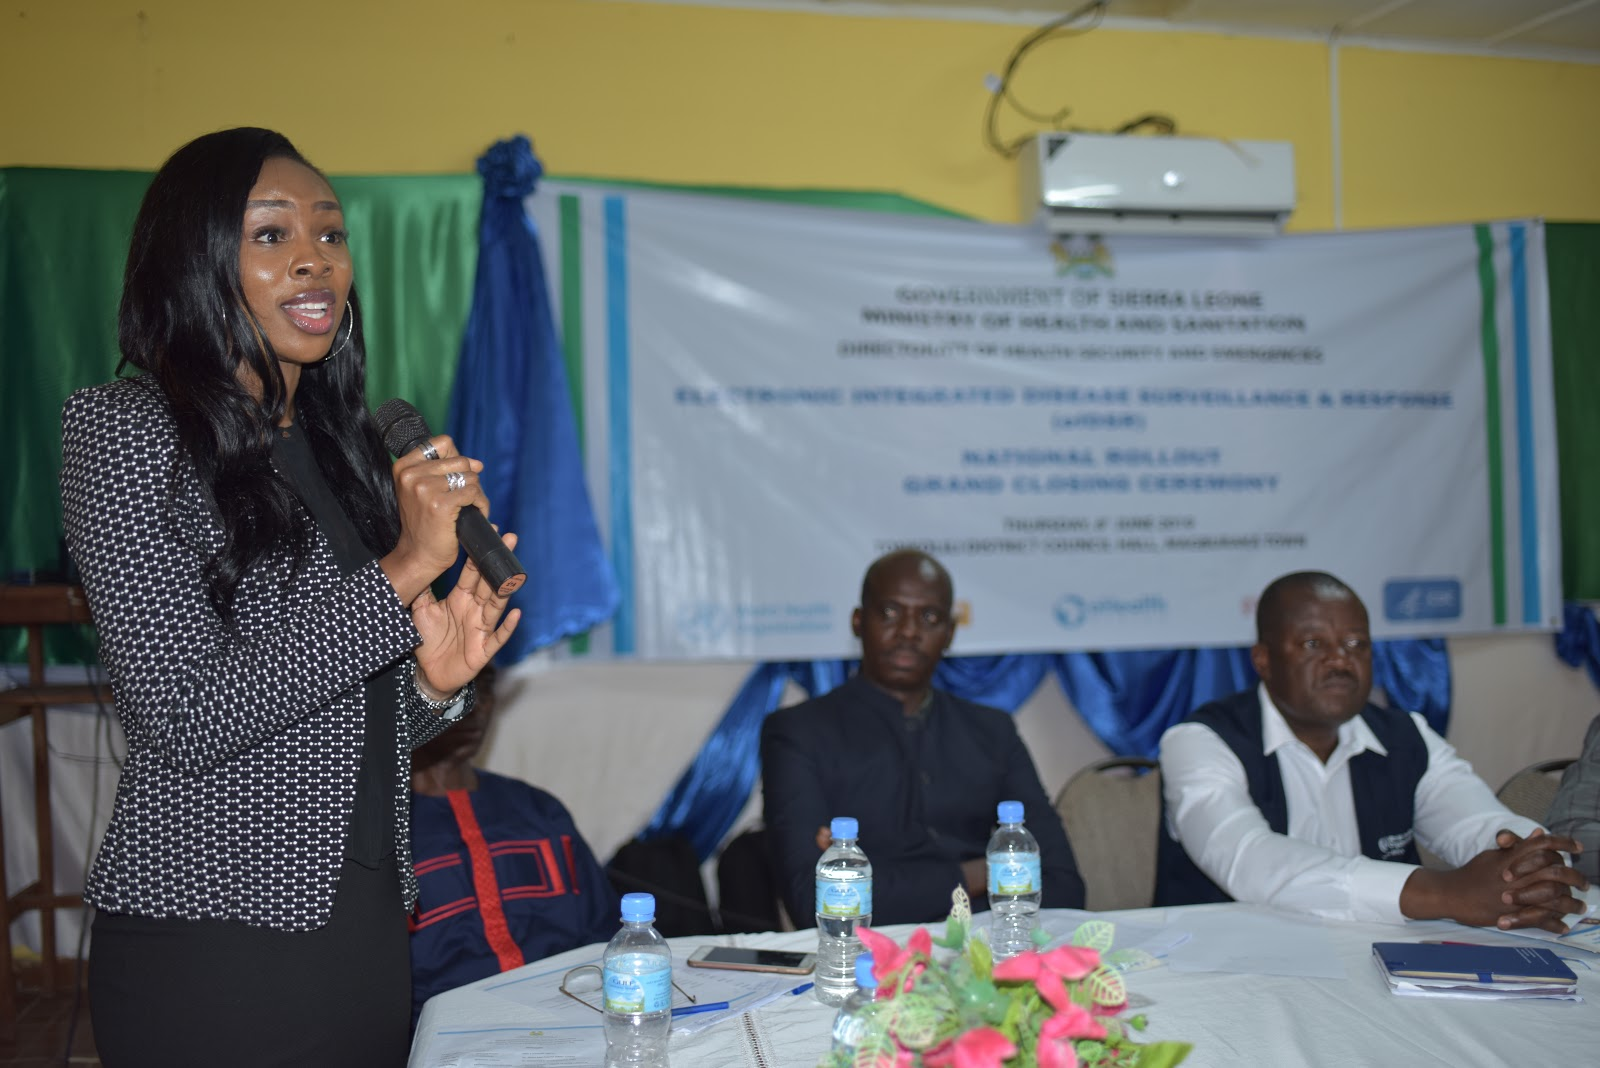 Nwanyibuife Obiako, Senior Programs Manager, eHA Sierra Leone, making a statement during the eIDSR rollout closing ceremony